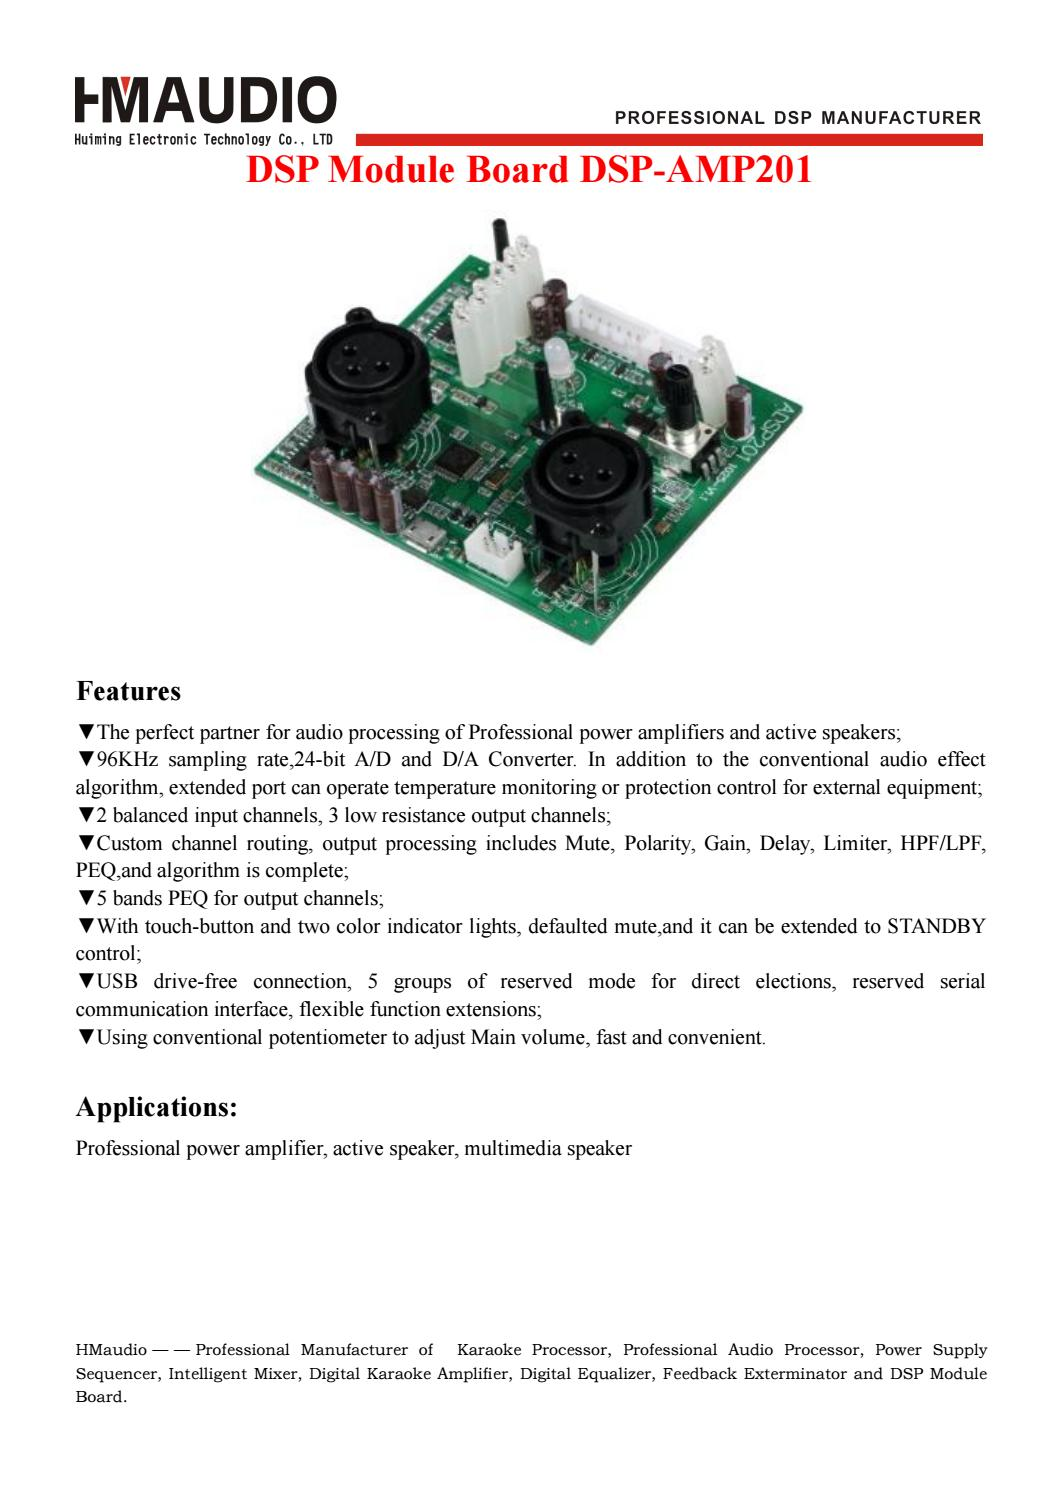 Dsp Amp201 Module Board By Sally Zhou Issuu Audio Processor Circuit